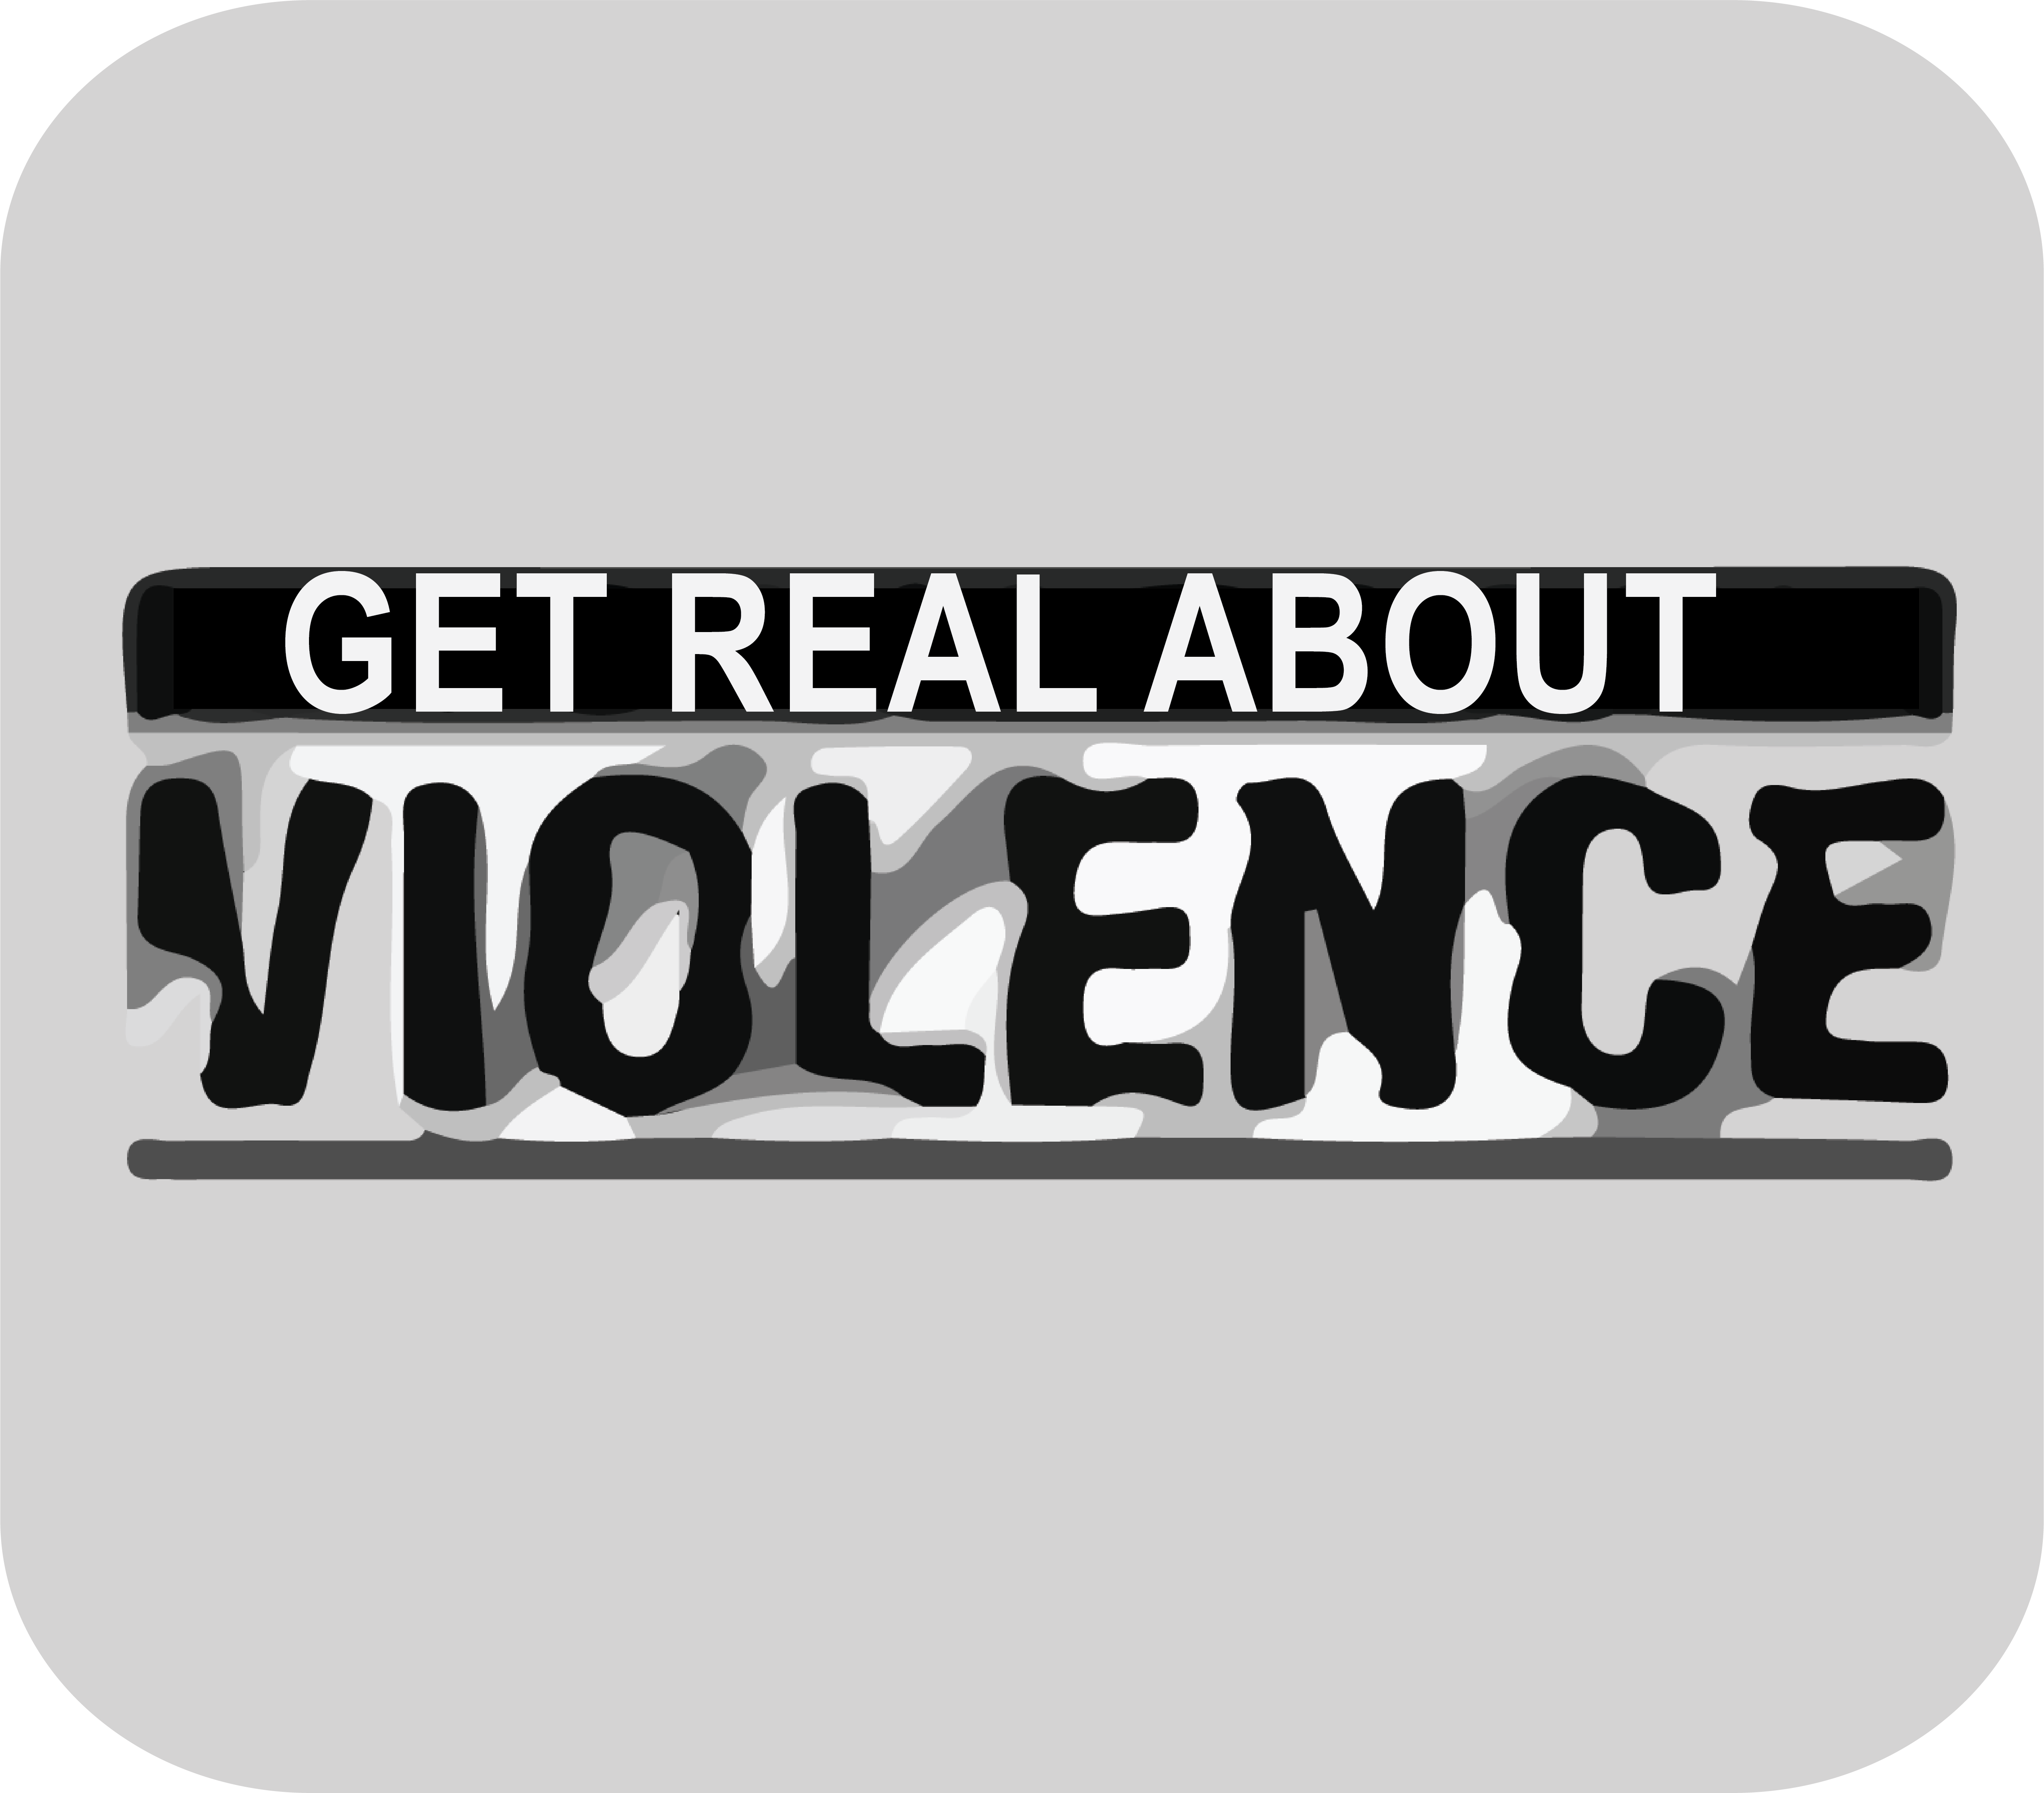 get real about violence